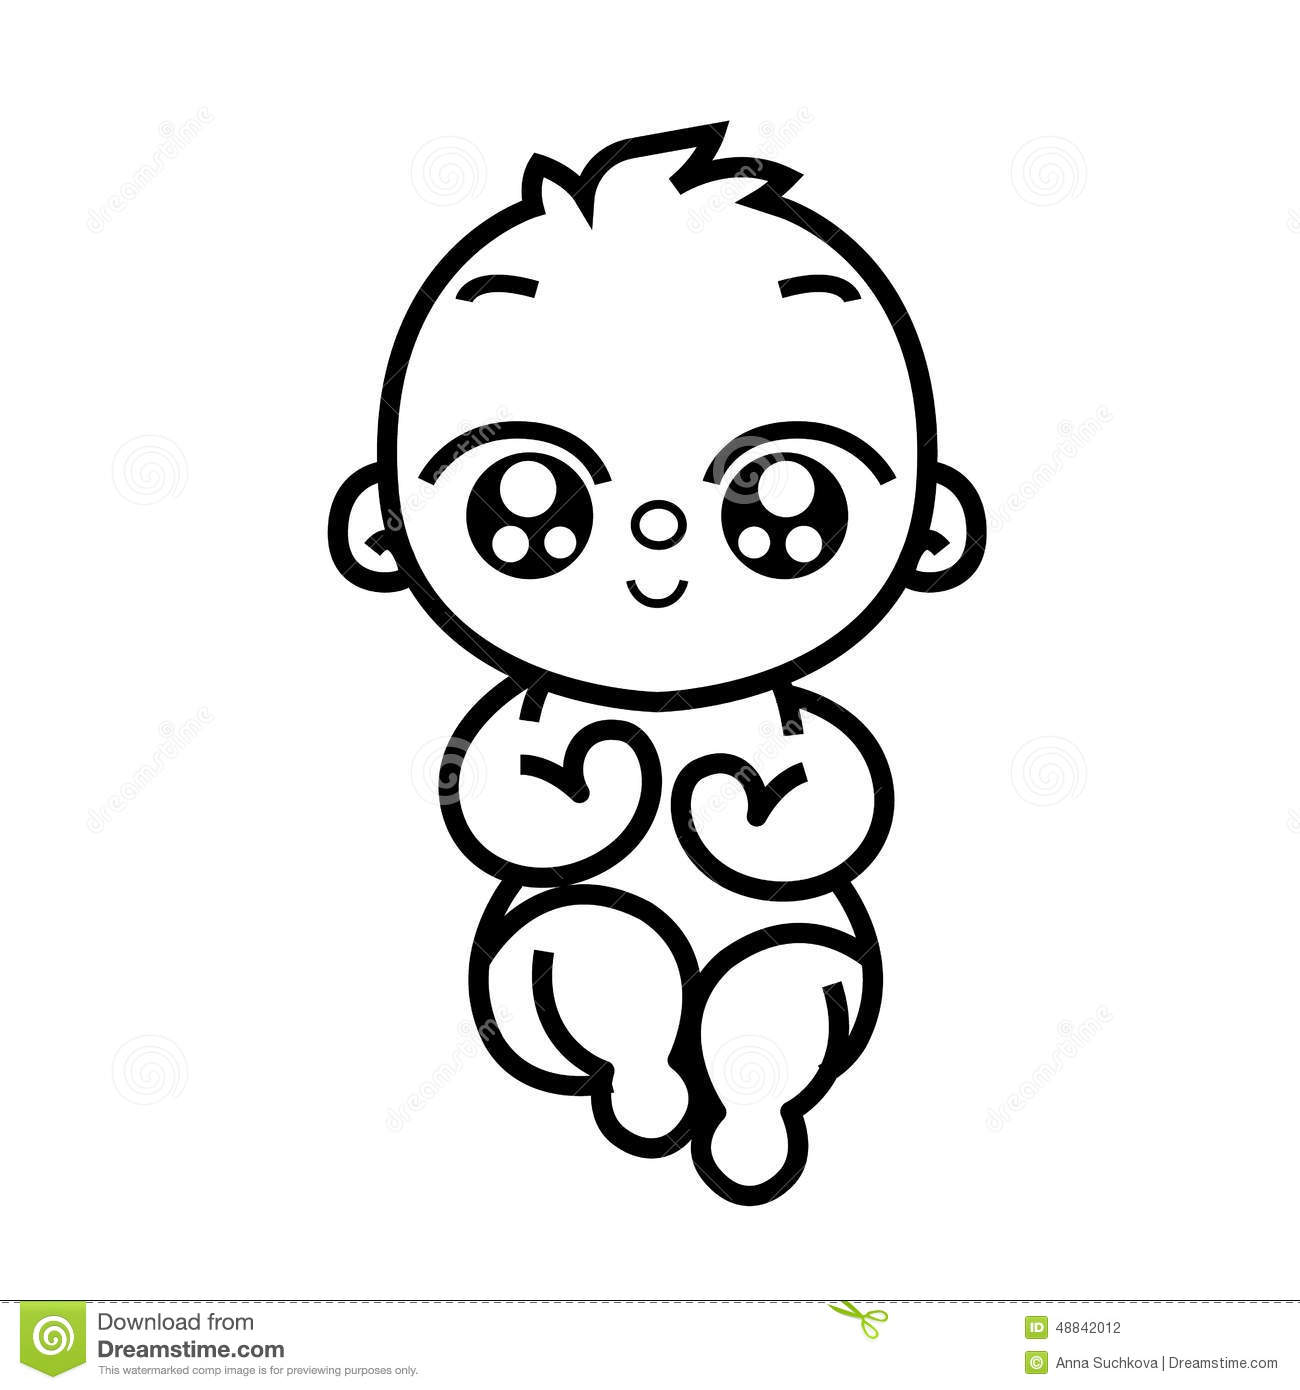 Programming also Clipart Decorative Border likewise Baby Shower Girl Boy Hand Drawn 446876605 as well Kids Silhouette Party Children 3297107 together with Scarecrow002PR Bw 144750. on baby boy birthday